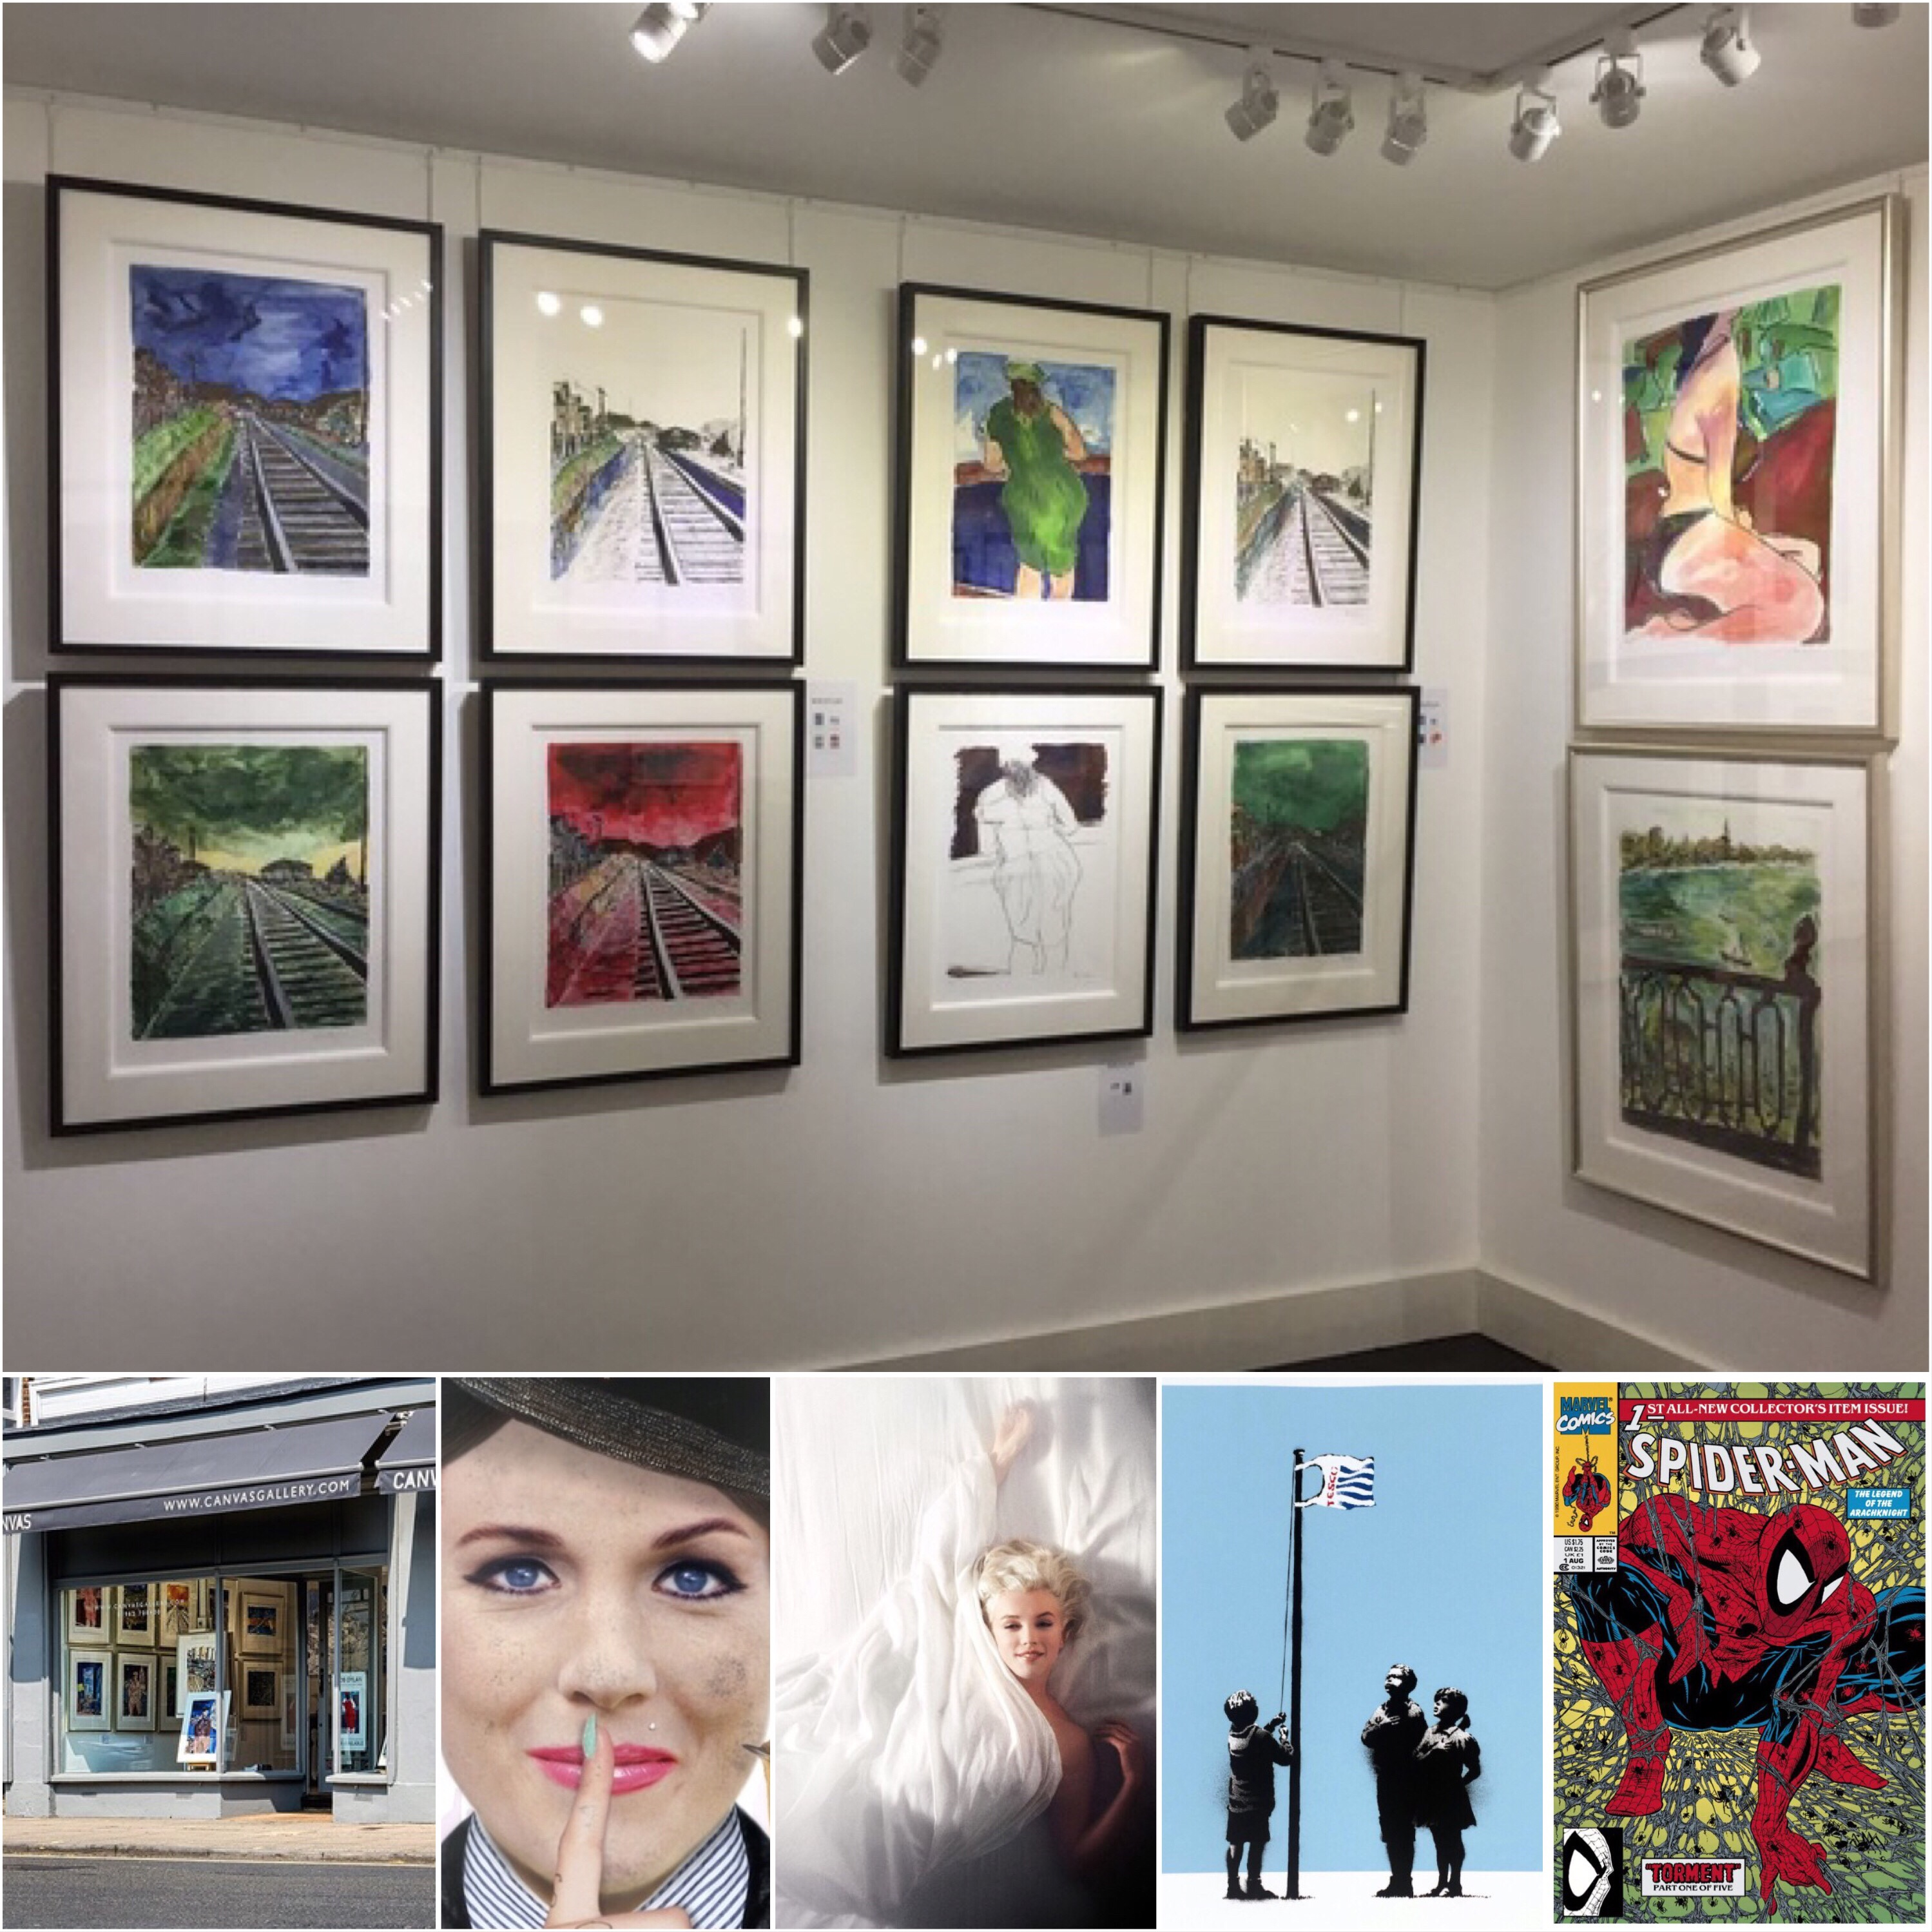 INVESTING IN ART? THE TOP 5 TIPS FROM THE CANVAS GALLERY